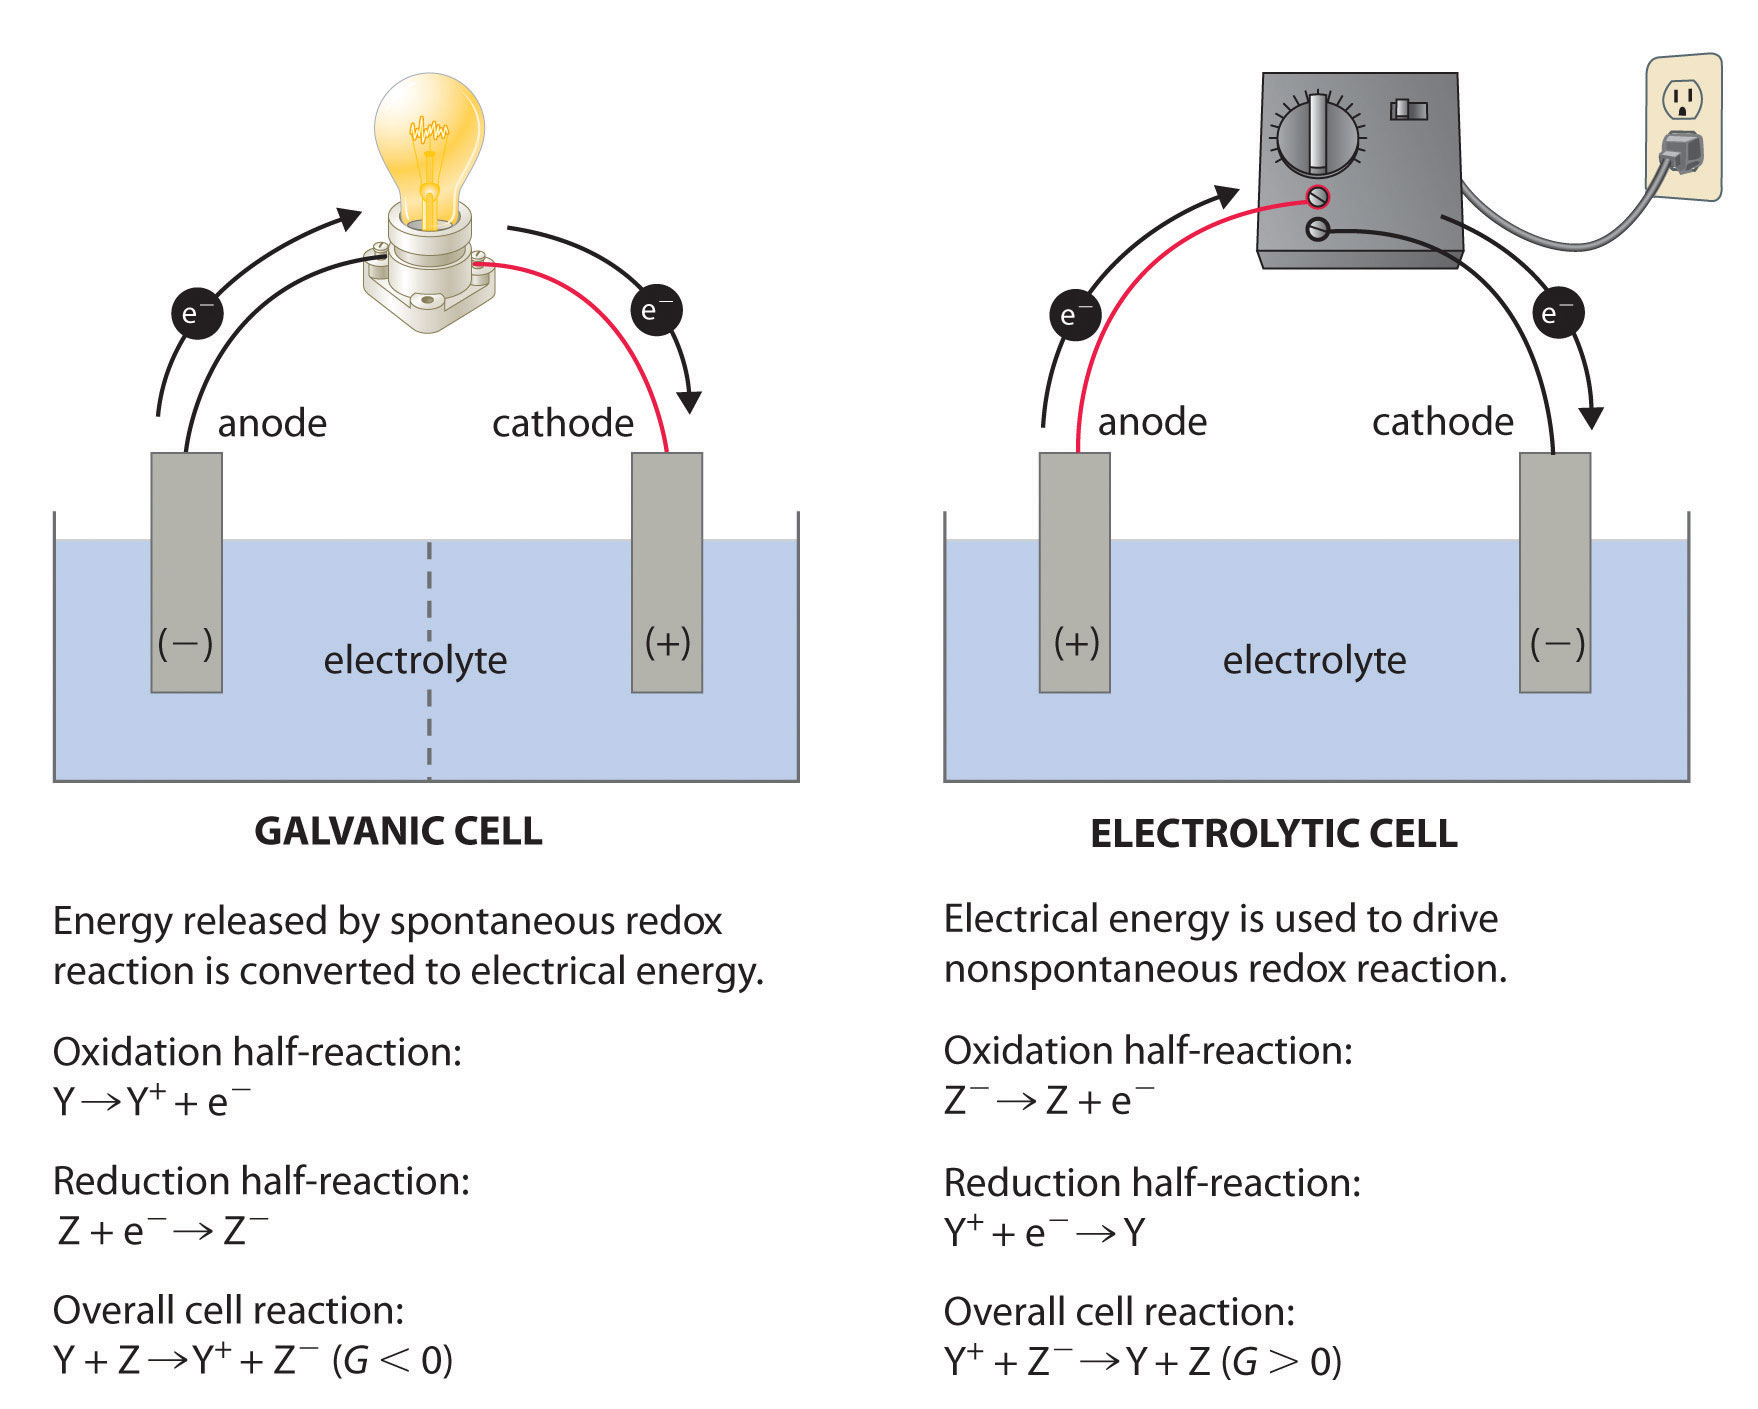 hight resolution of a galvanic cell left transforms the energy released by a spontaneous redox reaction into electrical energy that can be used to perform work